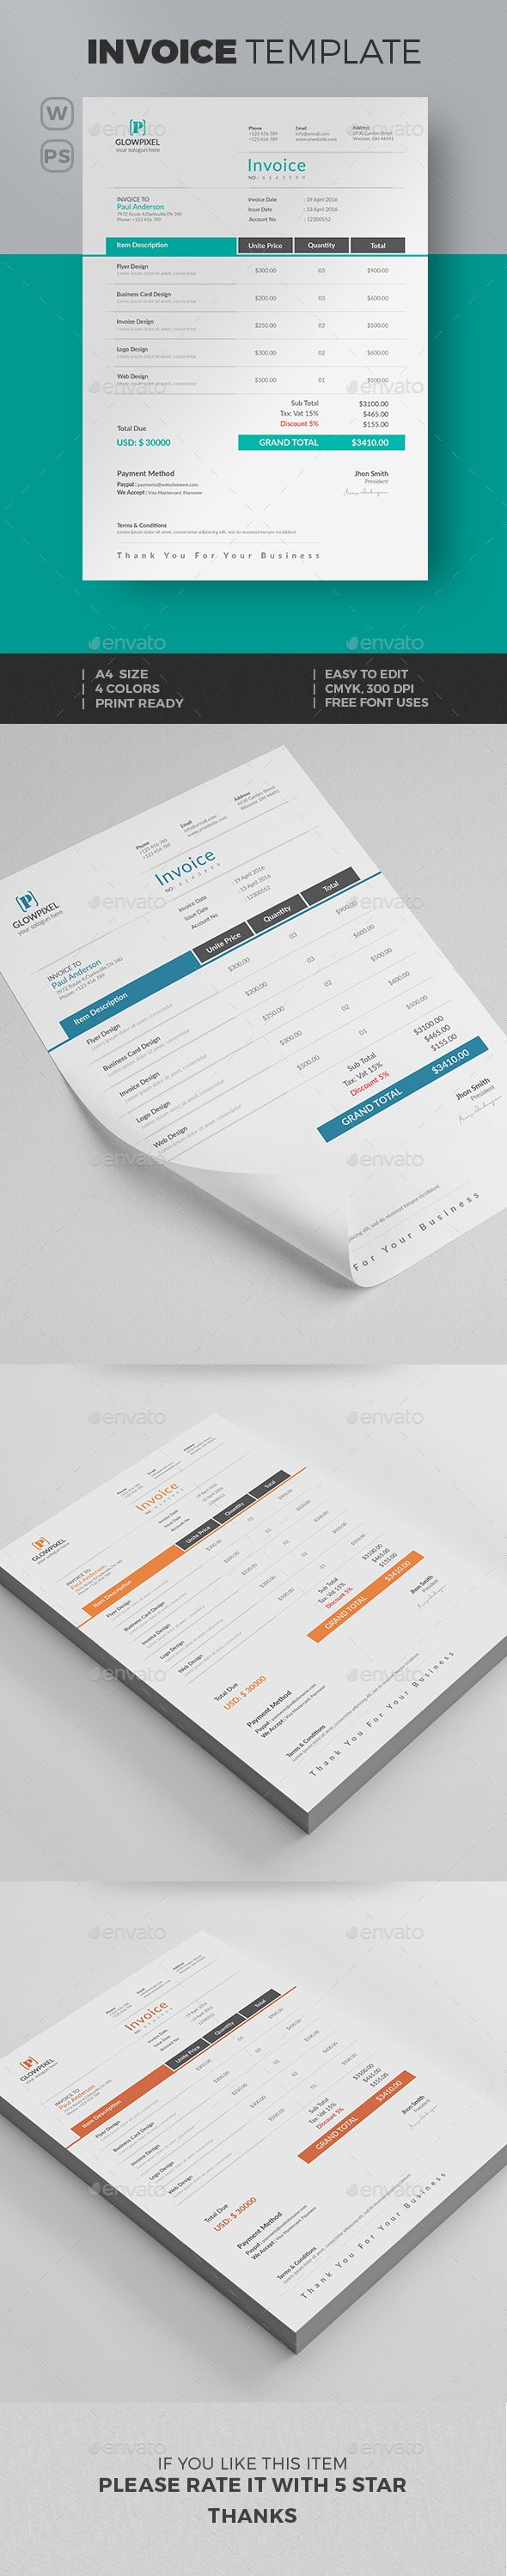 Product Sales Proposal Template Invoice  Template Web Design Tutorials And Logos